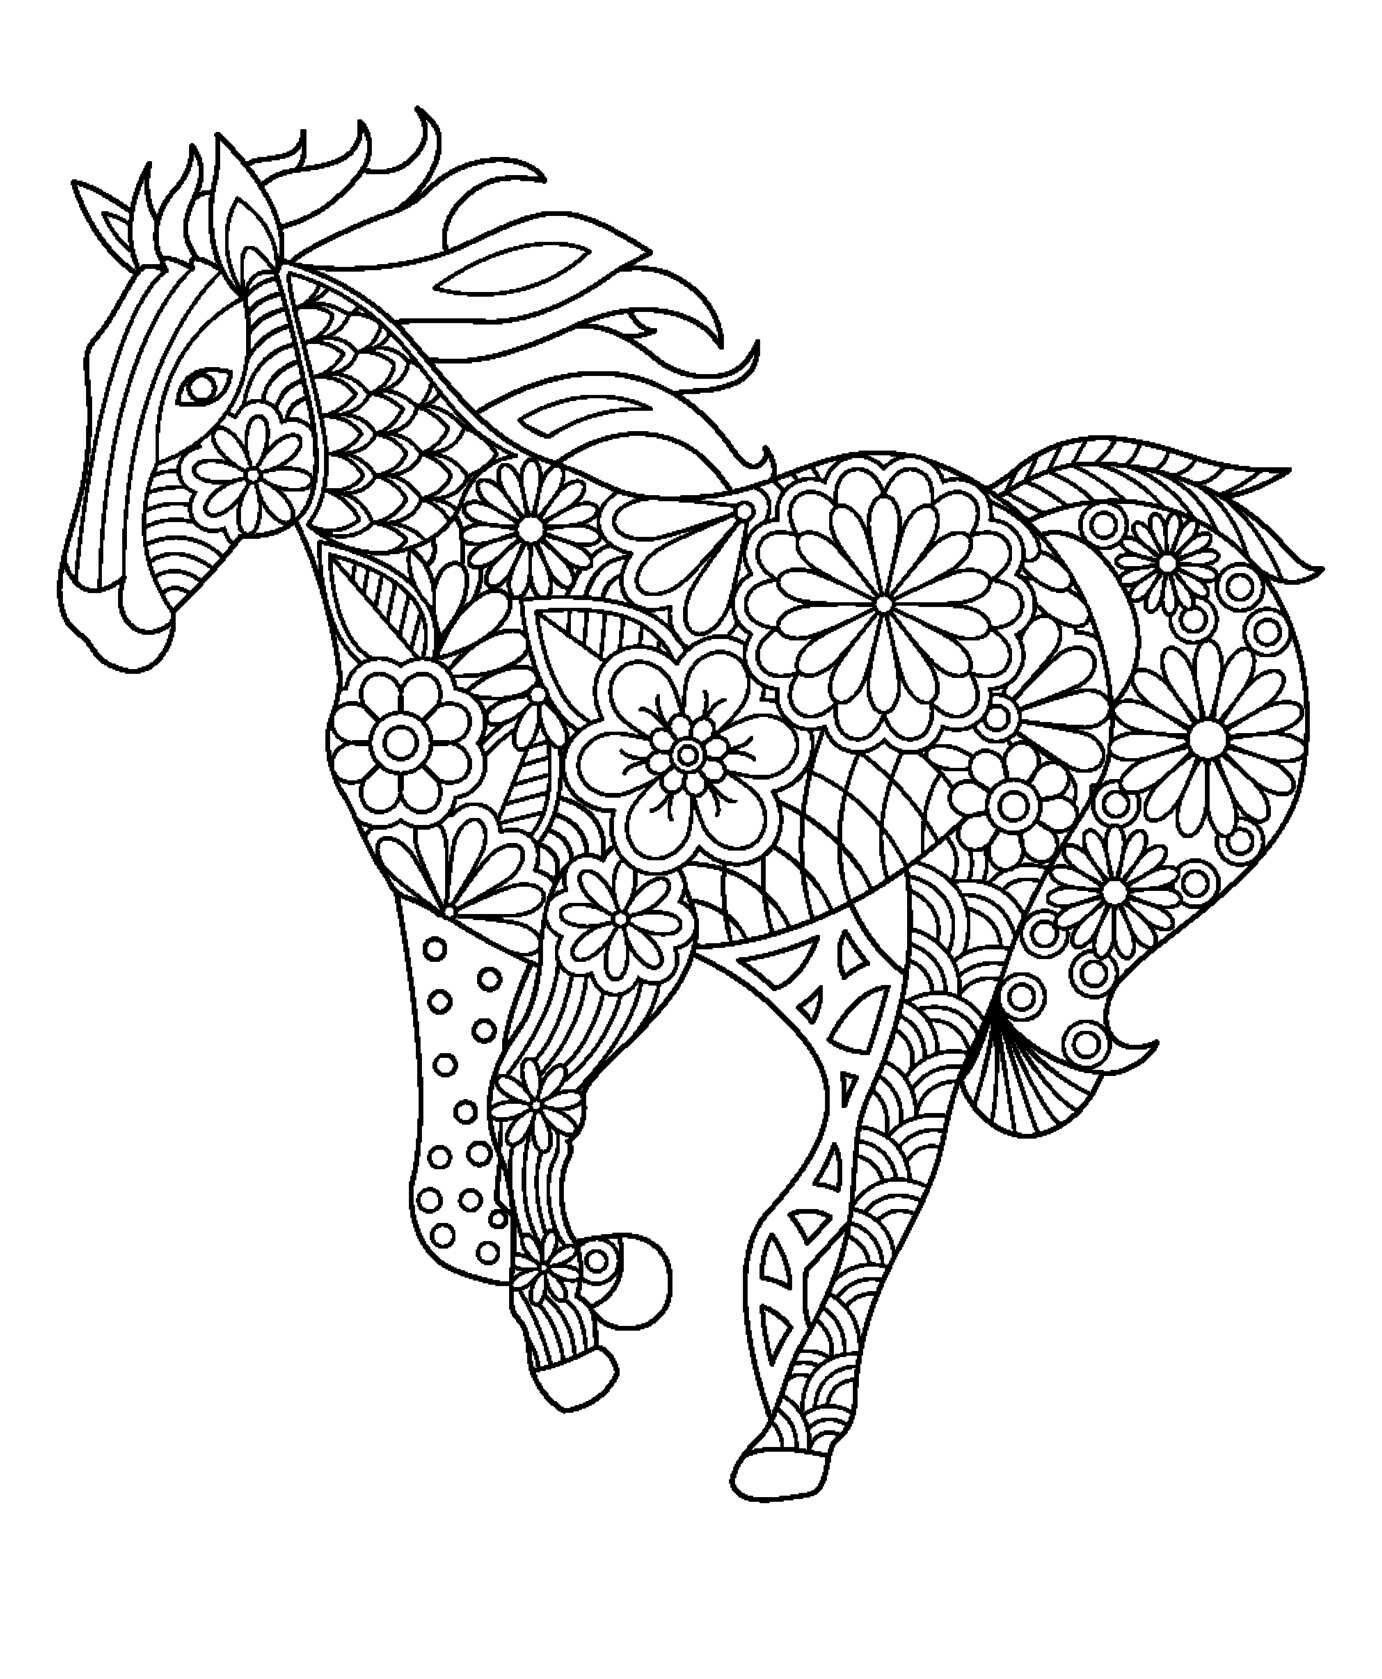 zentangle horse coloring pages - horse zentangle doodle black white animals art